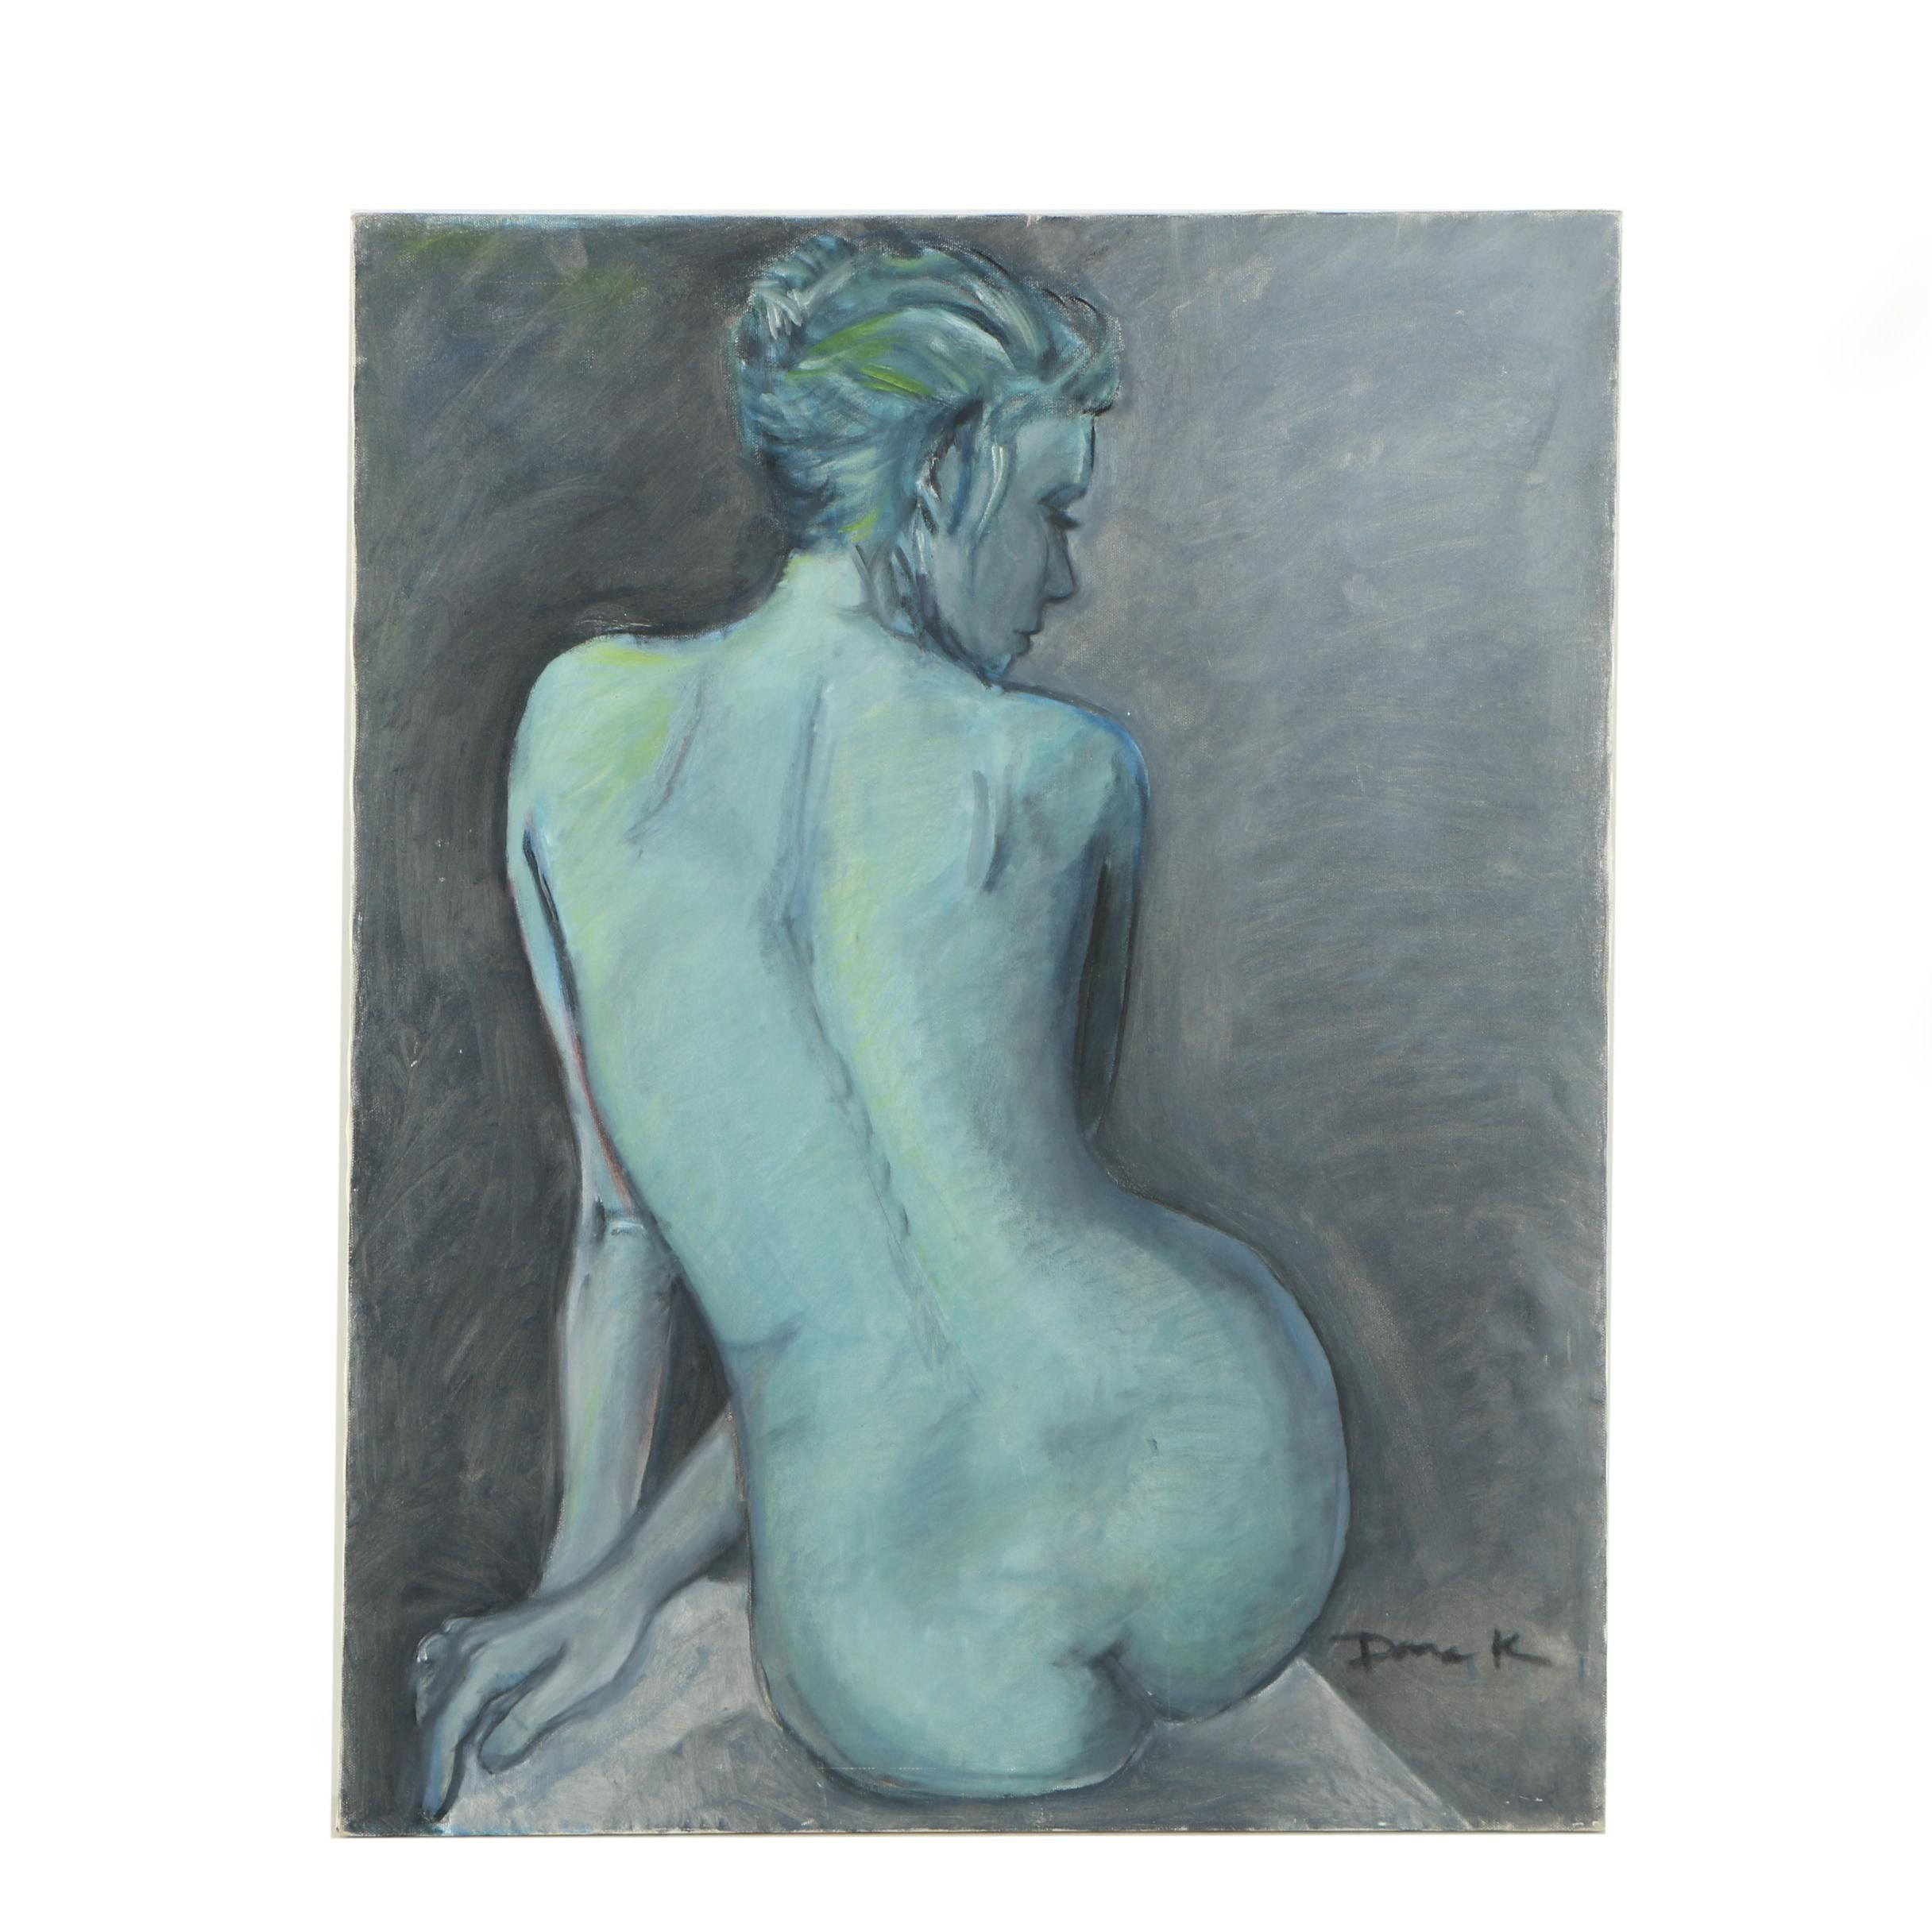 Dana K. Oil Painting of Nude Figure